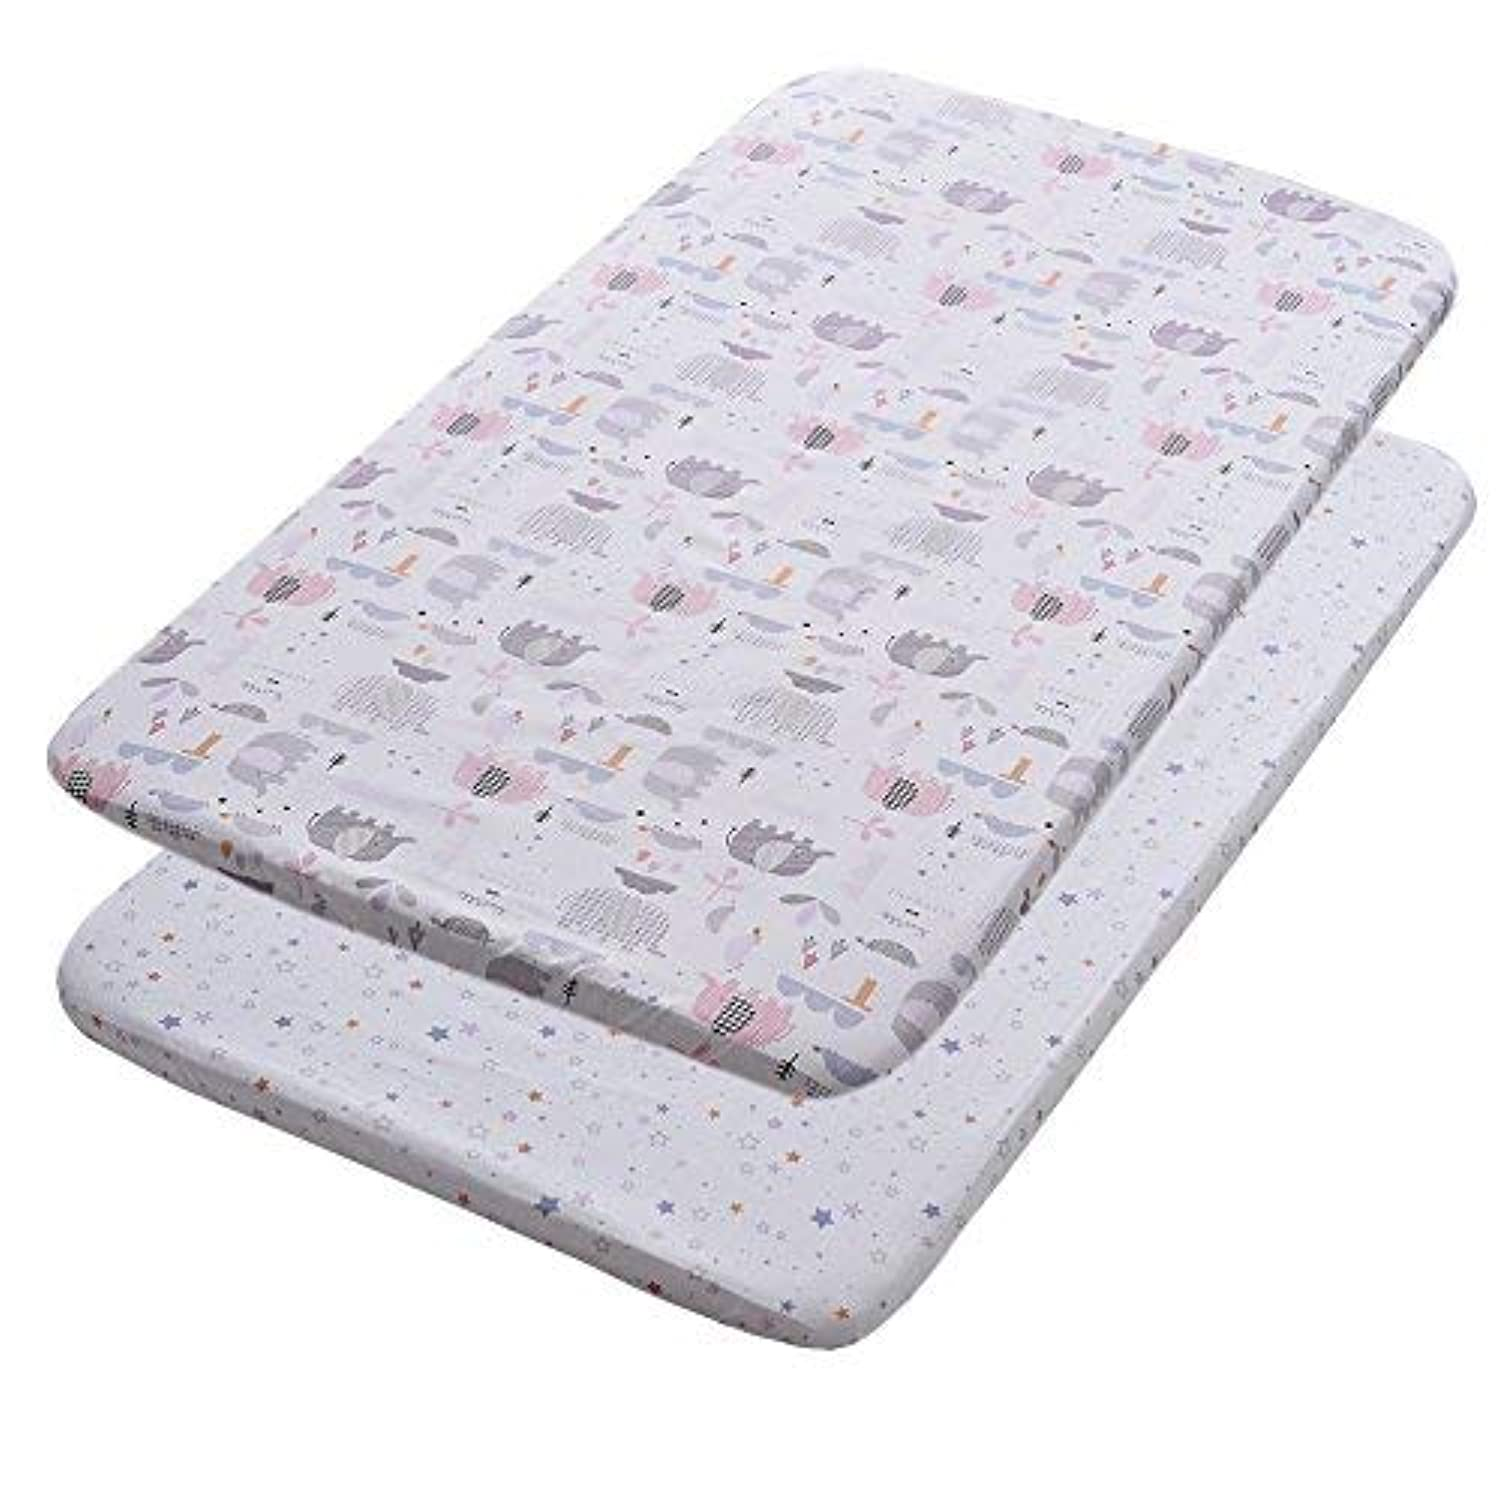 Gina Era Play Portable Crib Sheet Set 100% Jersey Cotton Unisex for Baby Girl and Boy2 Pack(style18) [並行輸入品]